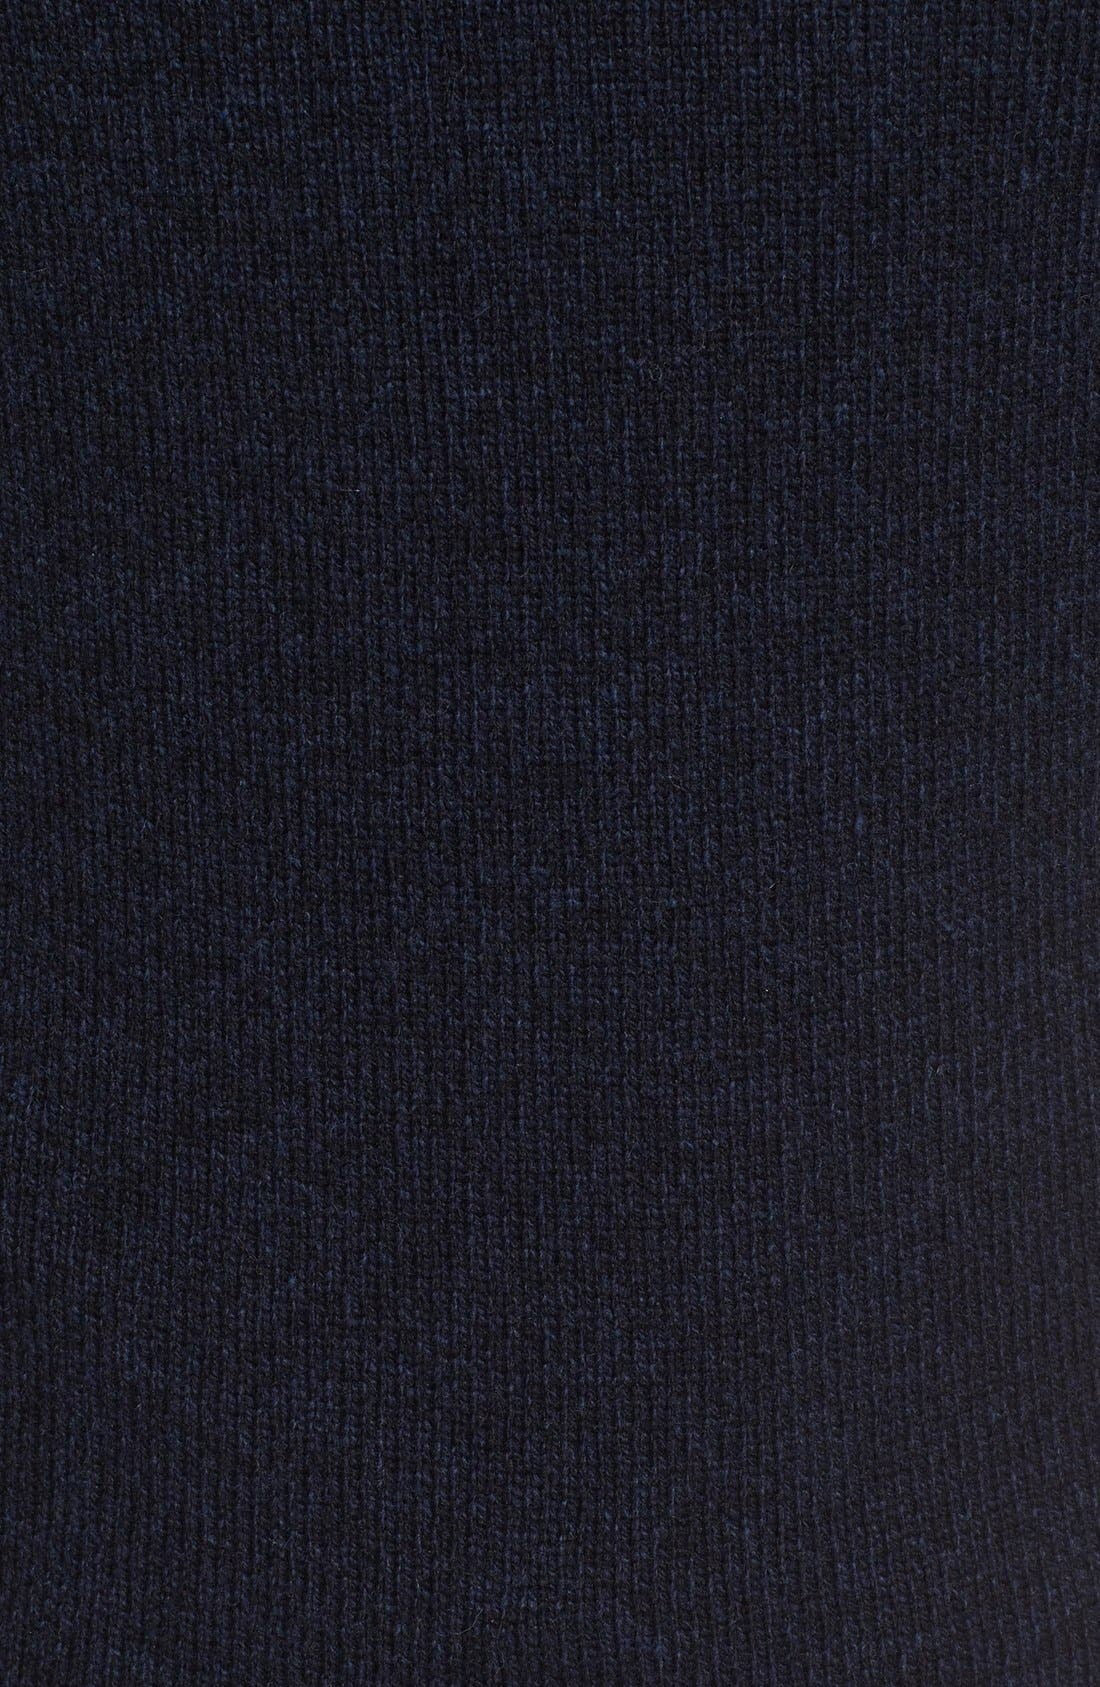 Stredwick Lambswool Sweater,                             Alternate thumbnail 5, color,                             Midnight